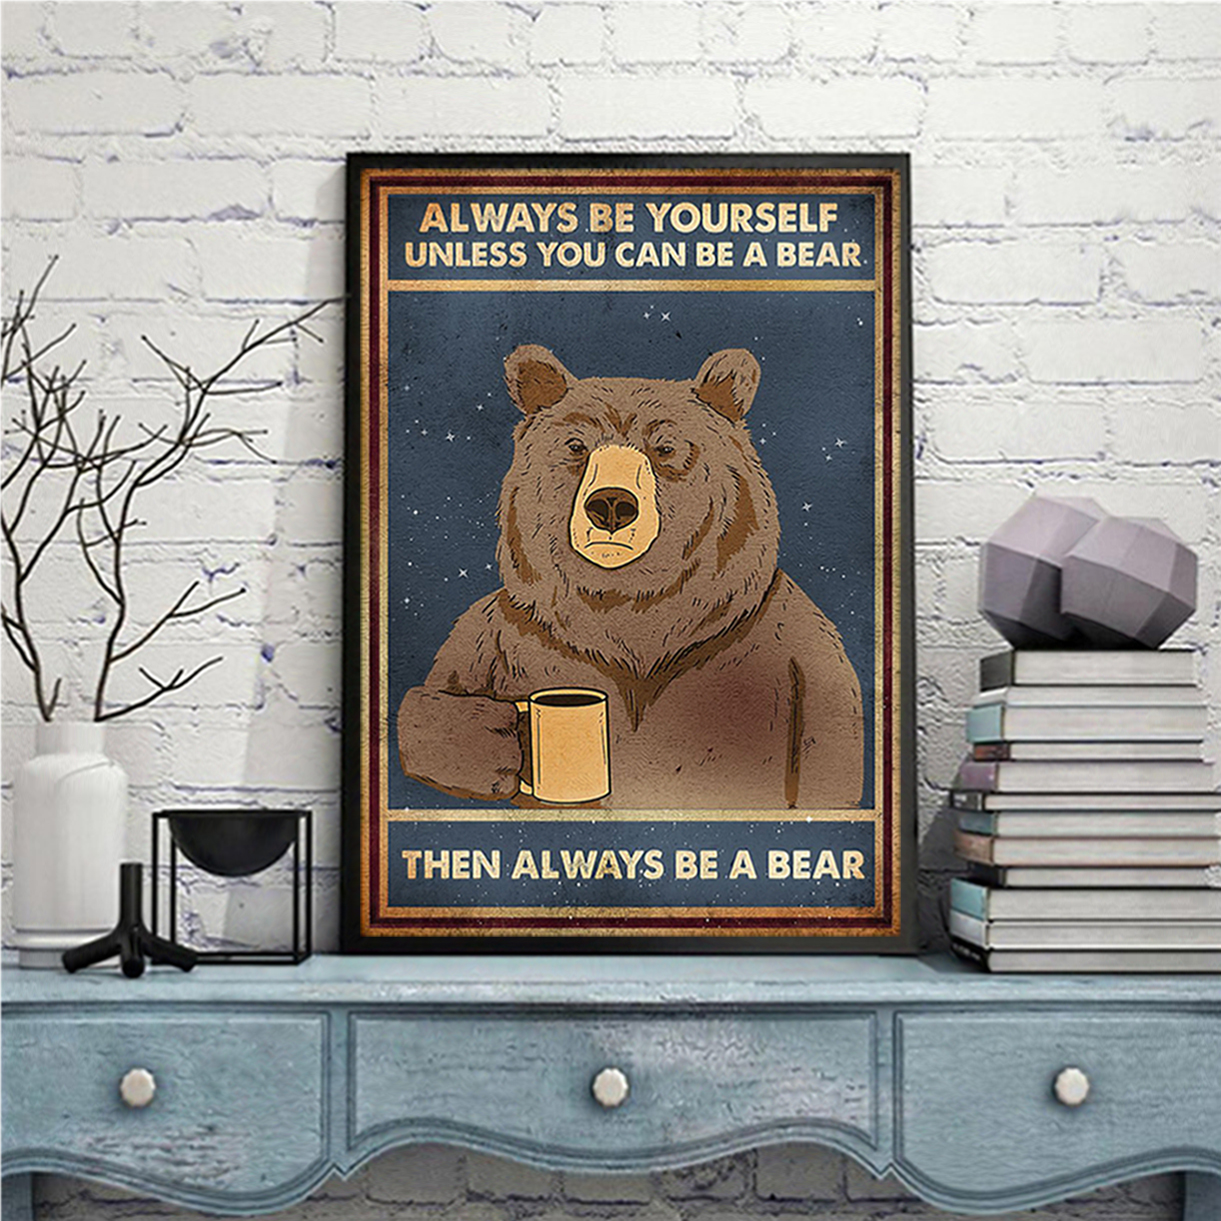 Always be yourself unless you can be a bear poster A2